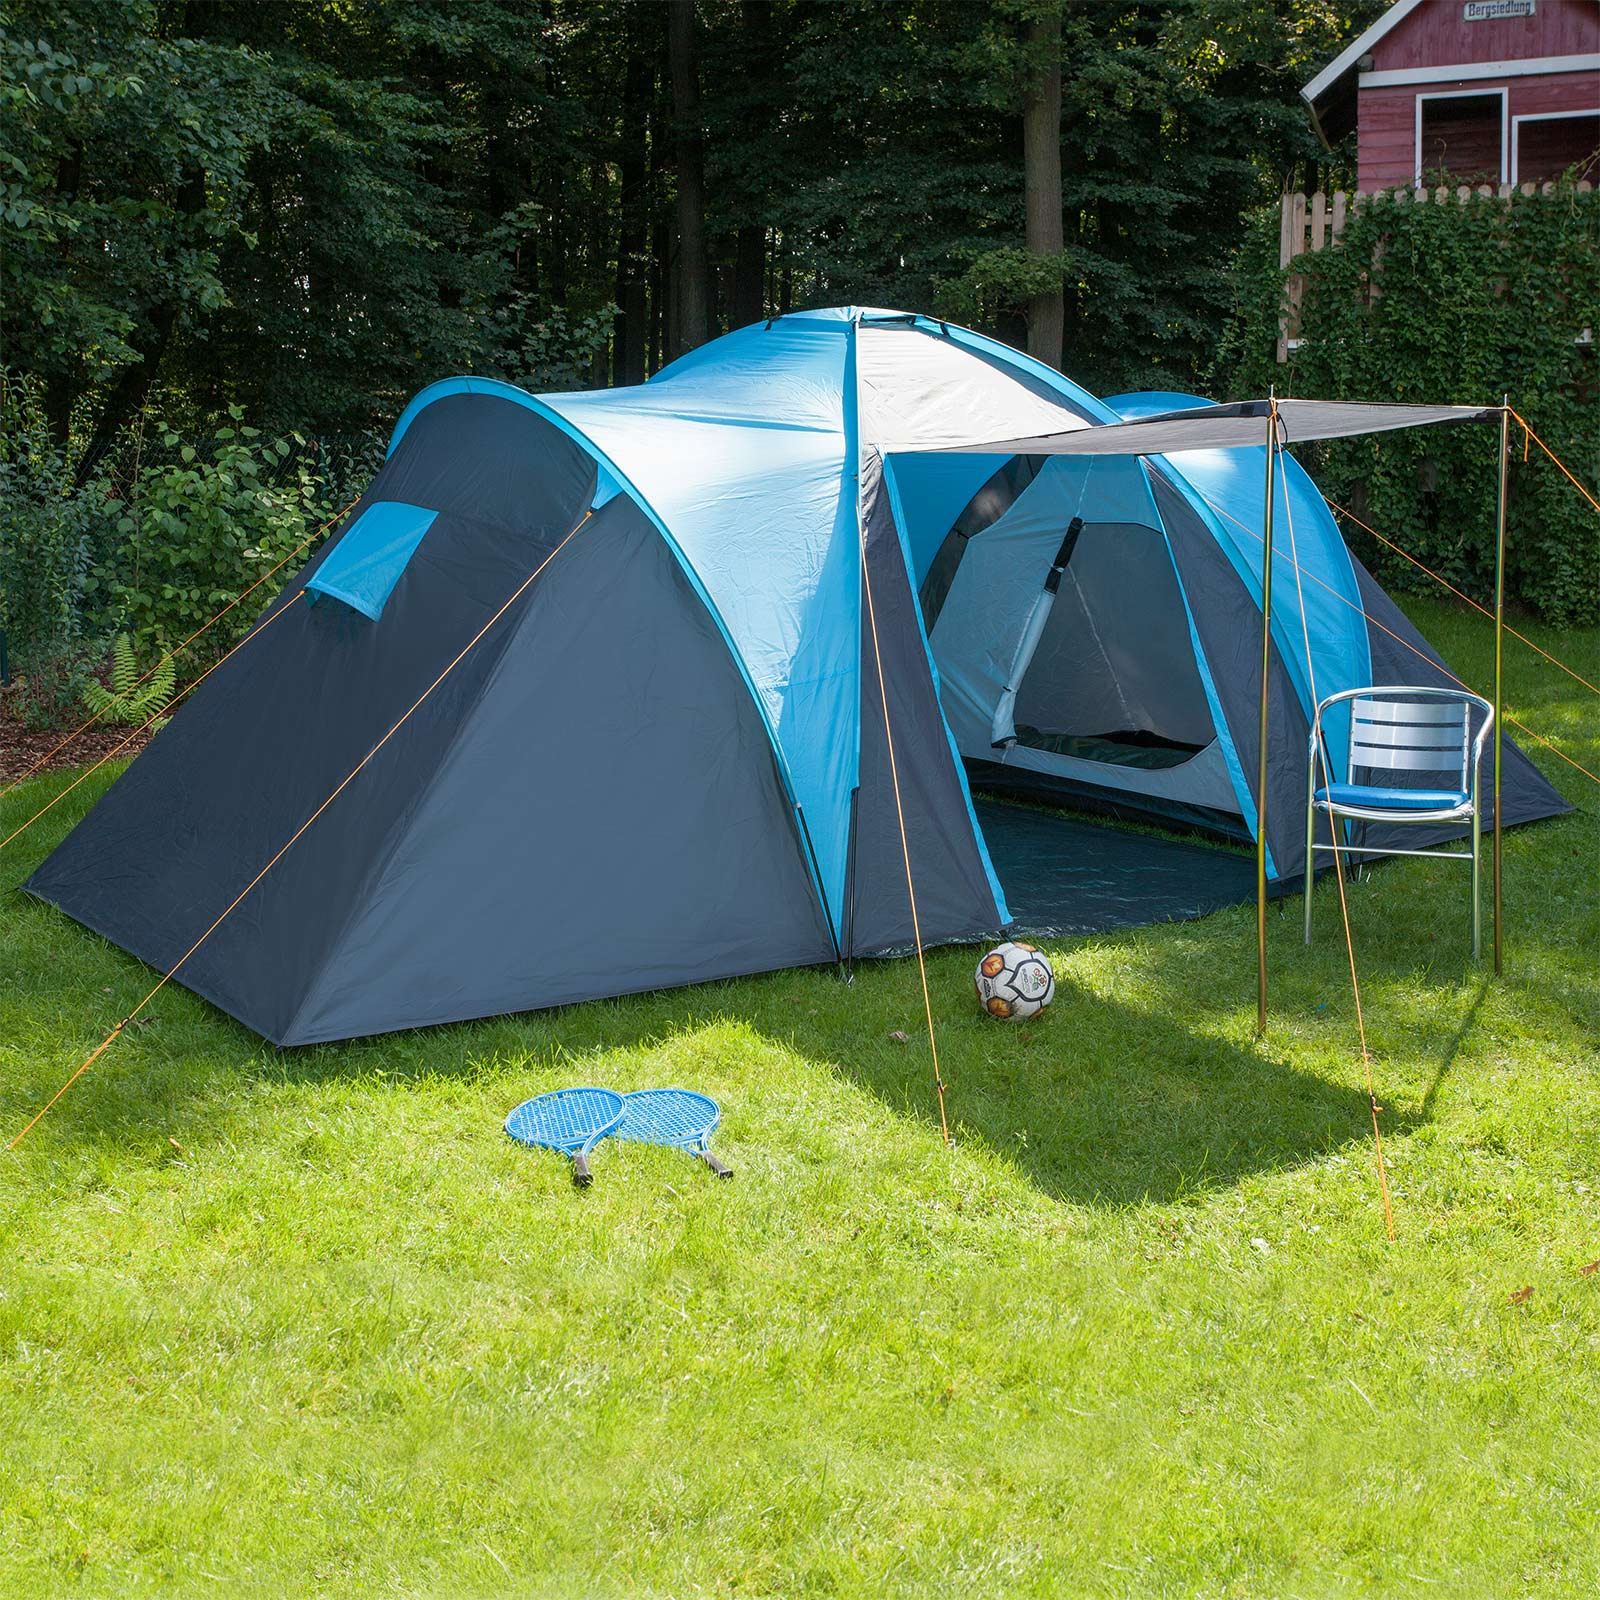 skandika hammerfest 4 person man family tent camping blue. Black Bedroom Furniture Sets. Home Design Ideas